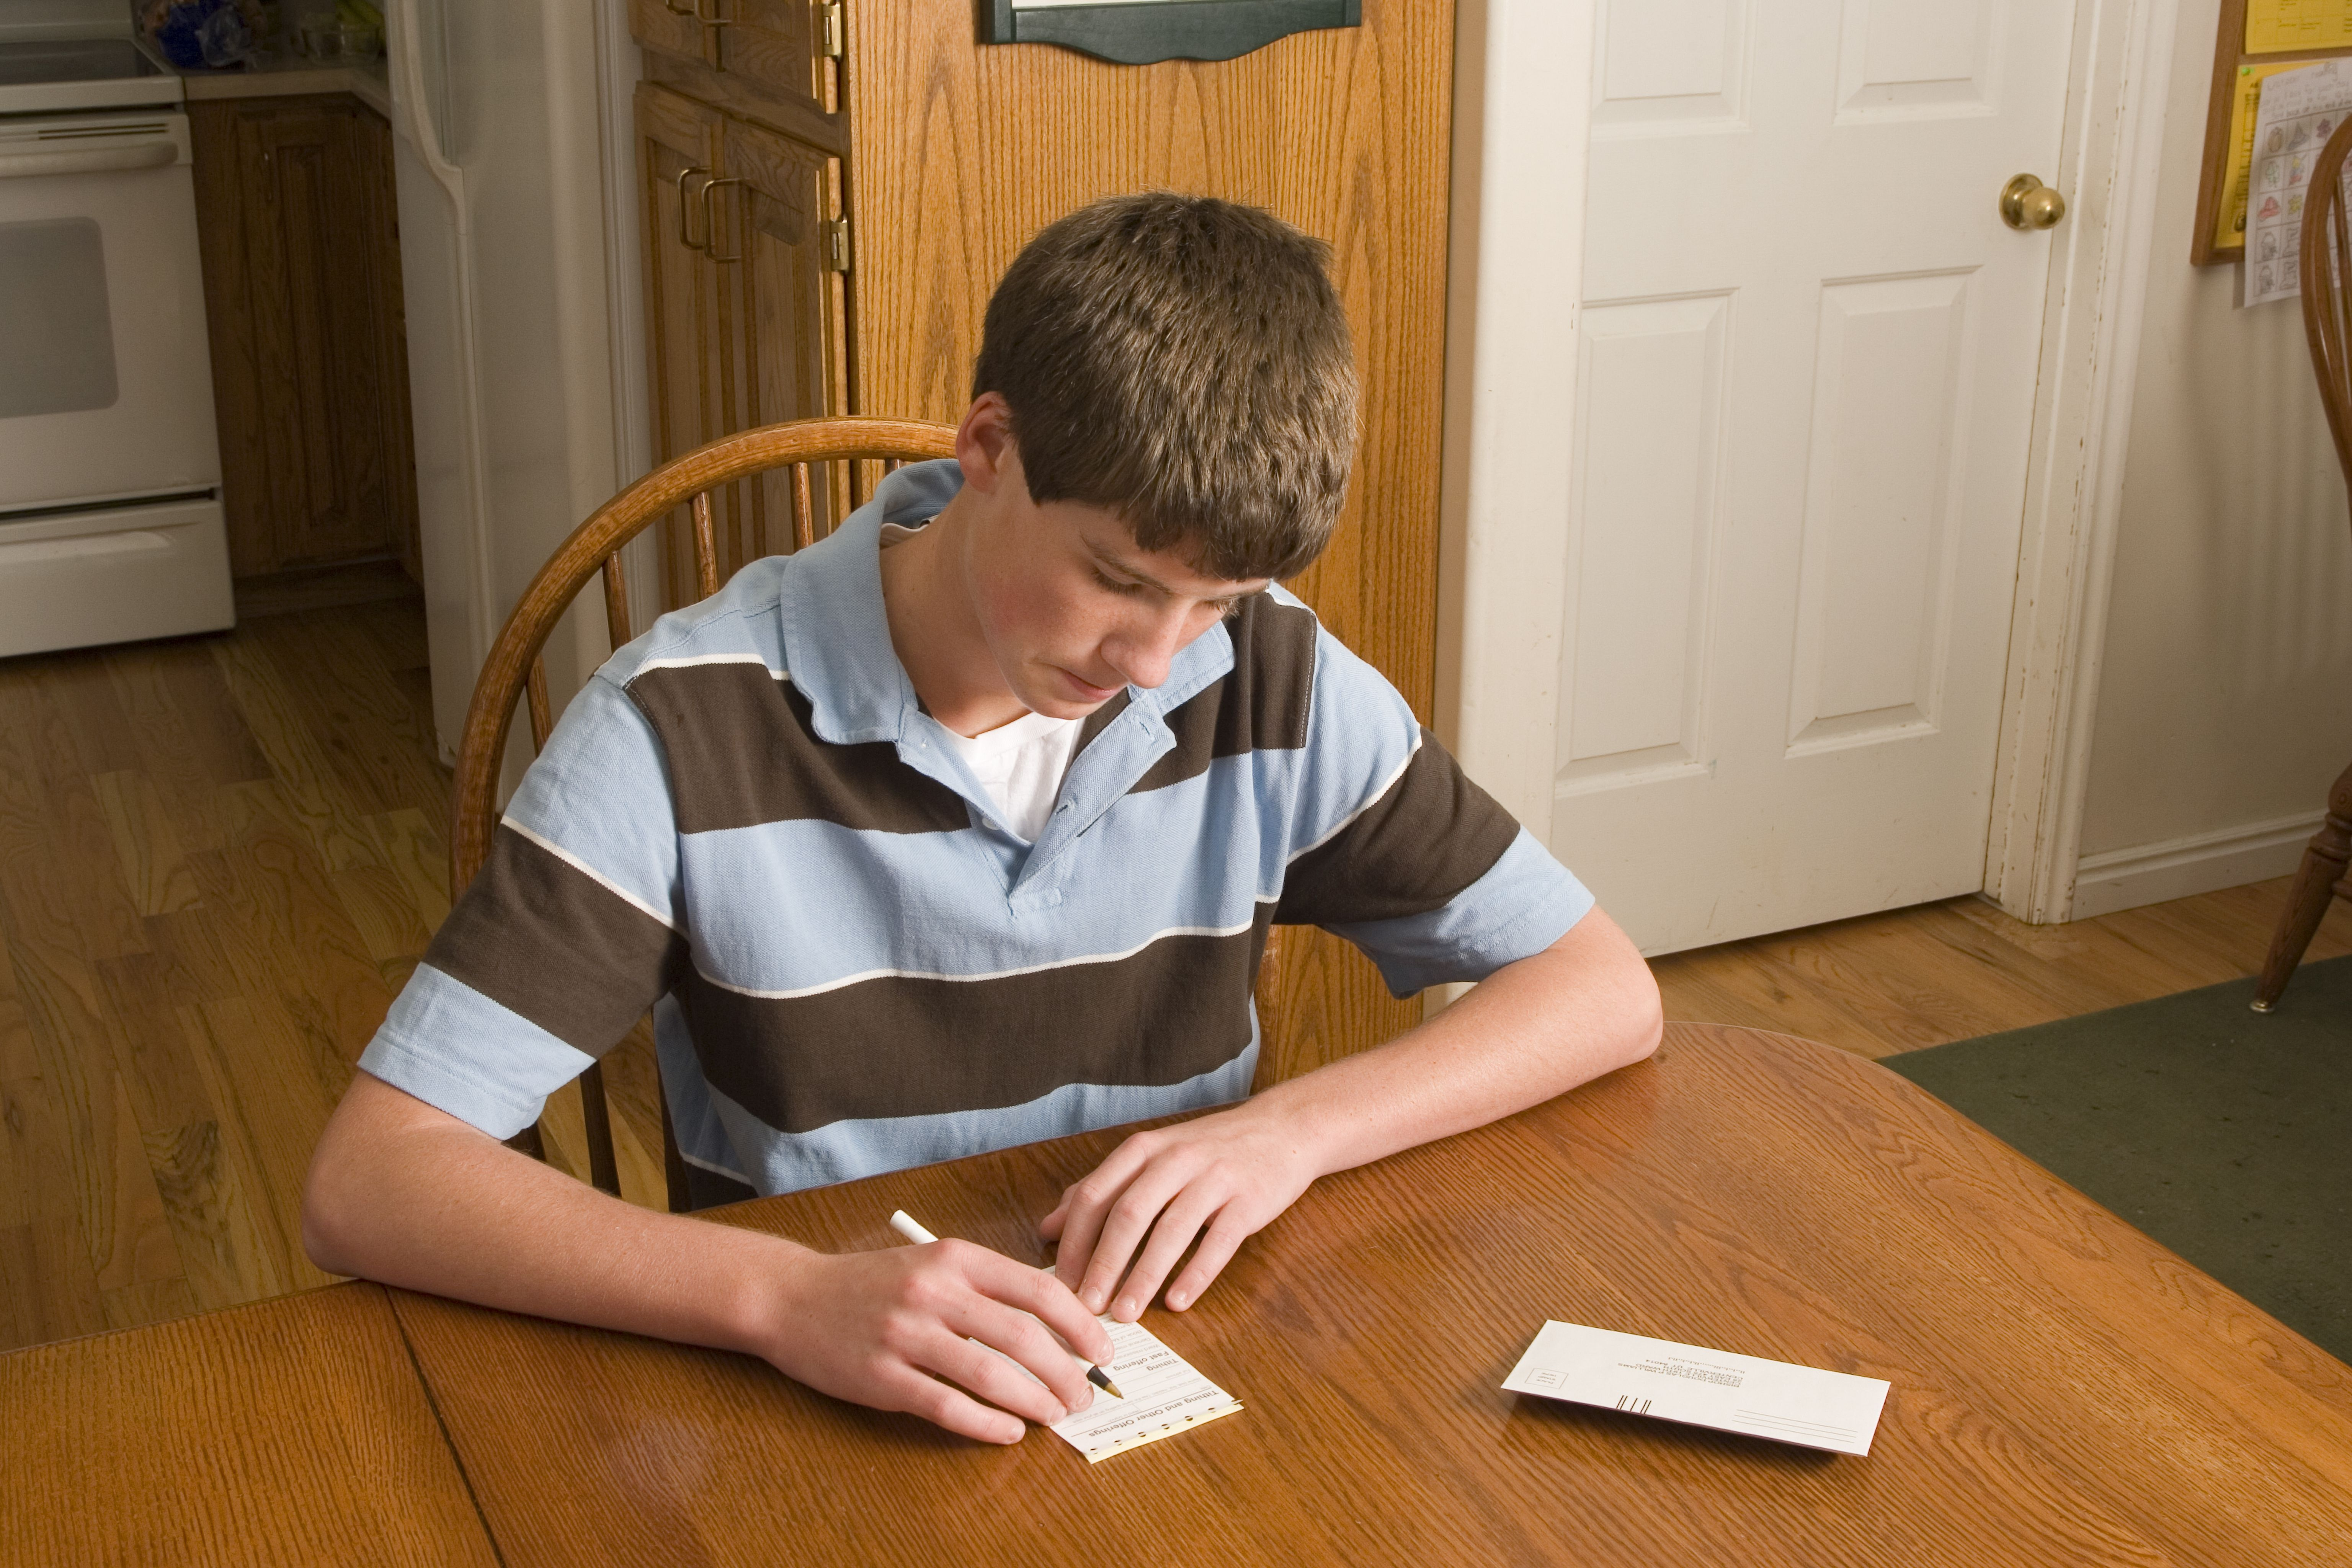 A young man fills out a tithing slip at the kitchen table.